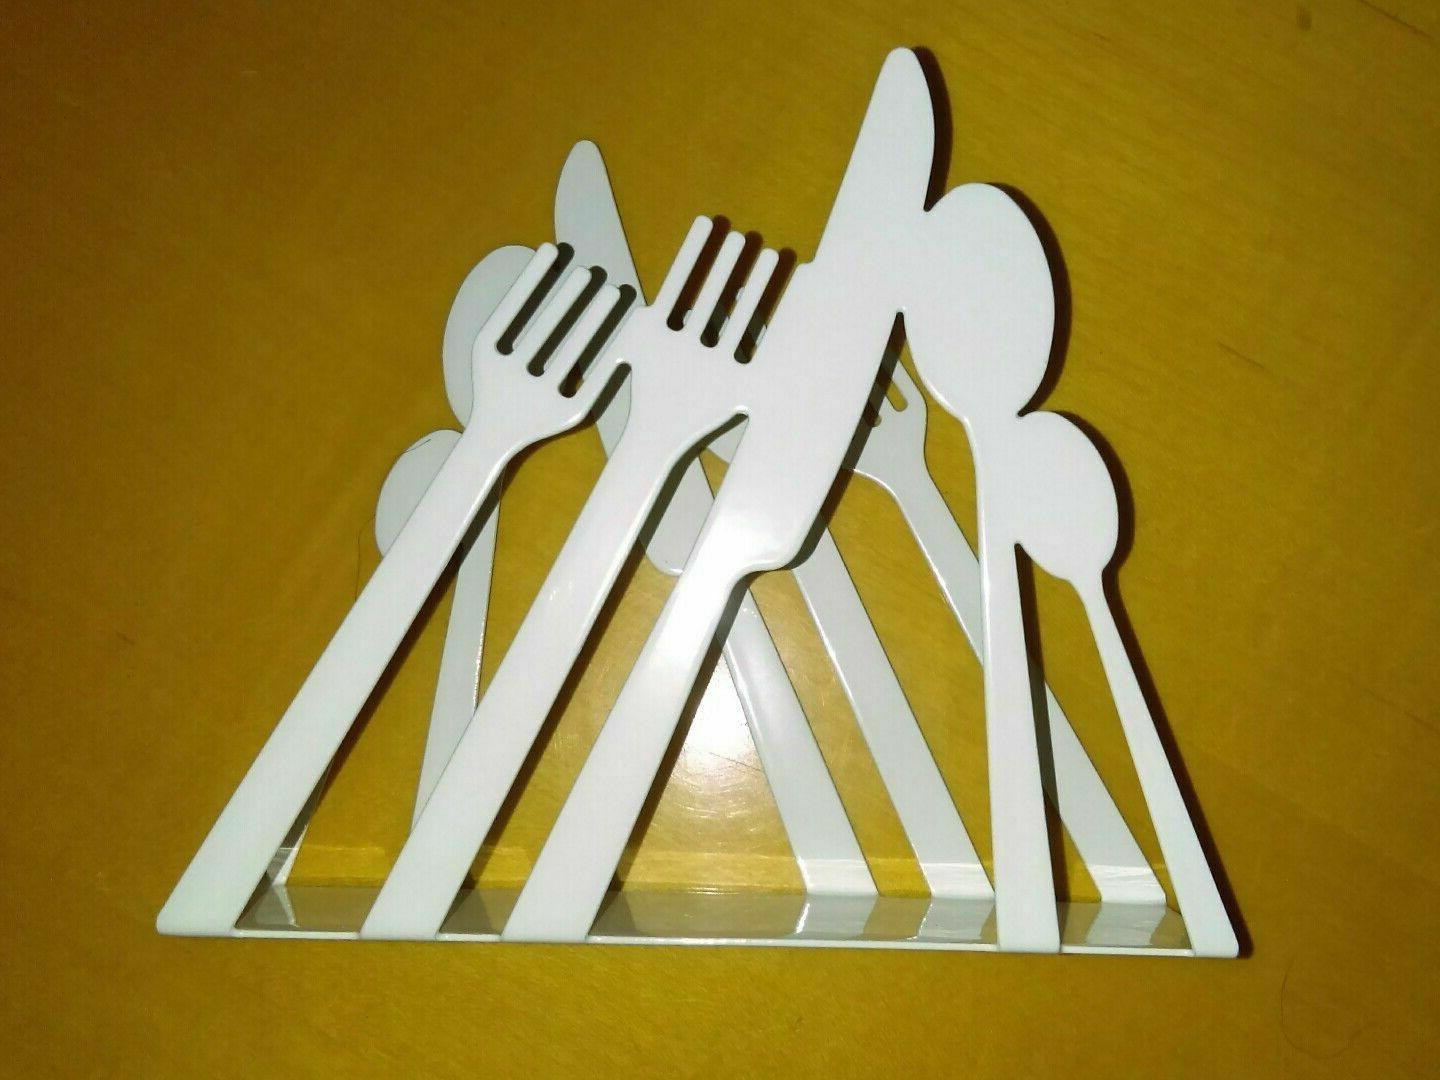 retro napkin holder stainless steel paper cutlery